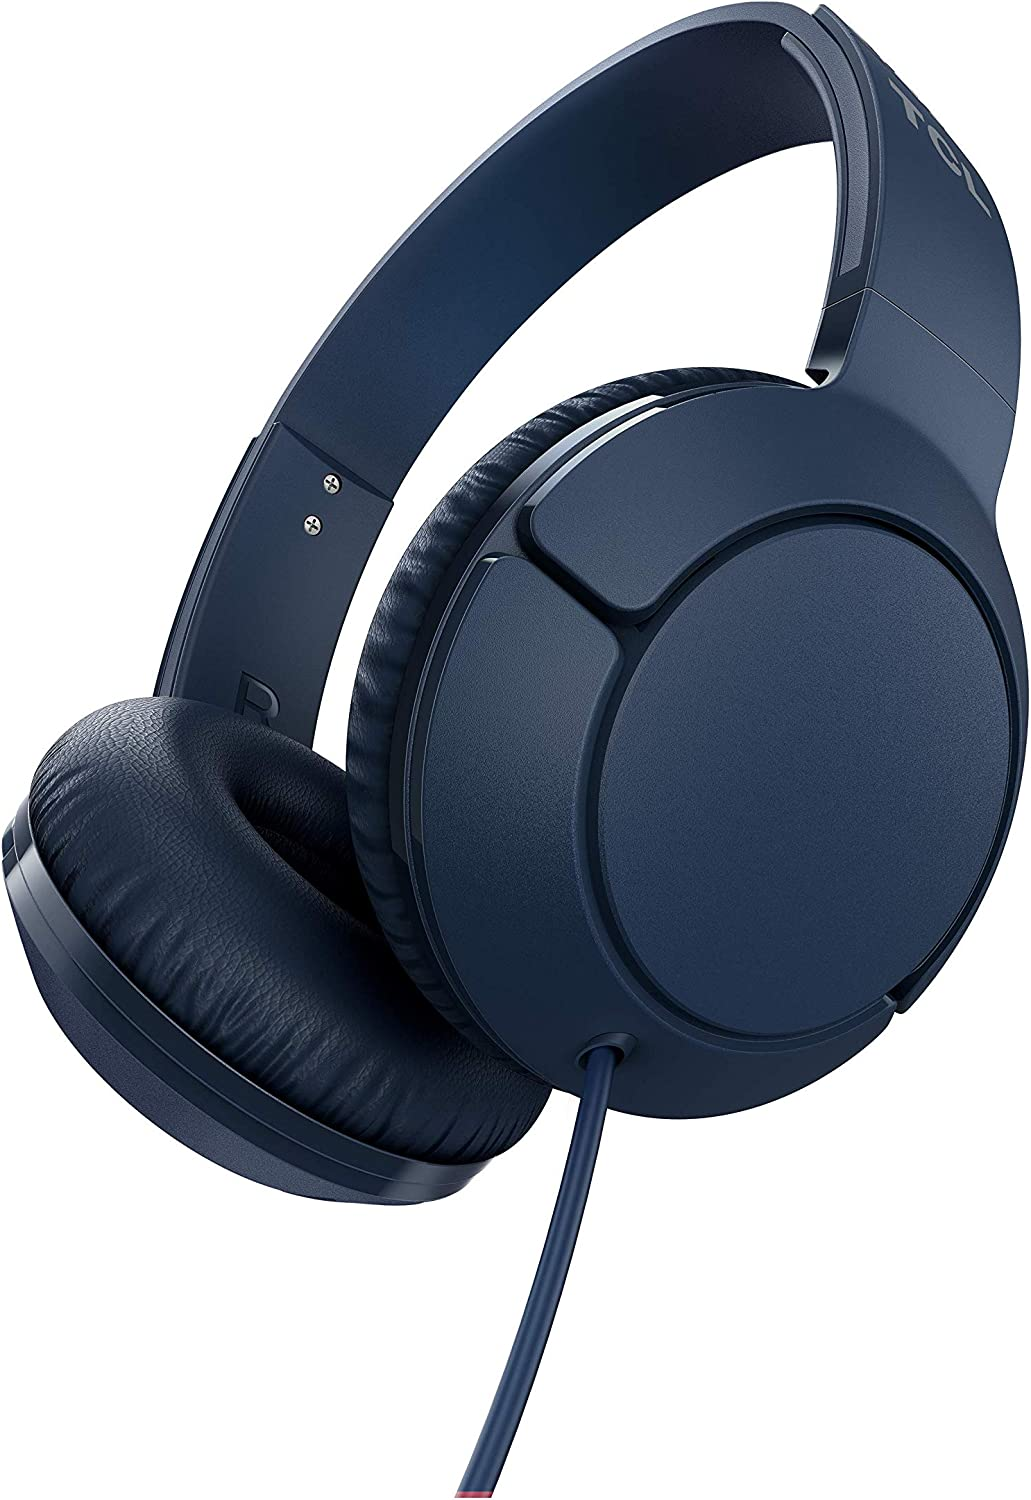 TCL Mtro200 On-Ear Wired Headphones Super Light Weight Headphones with 32mm Drivers for Huge Bass and Built-in Mic – Slate Blue, One Size